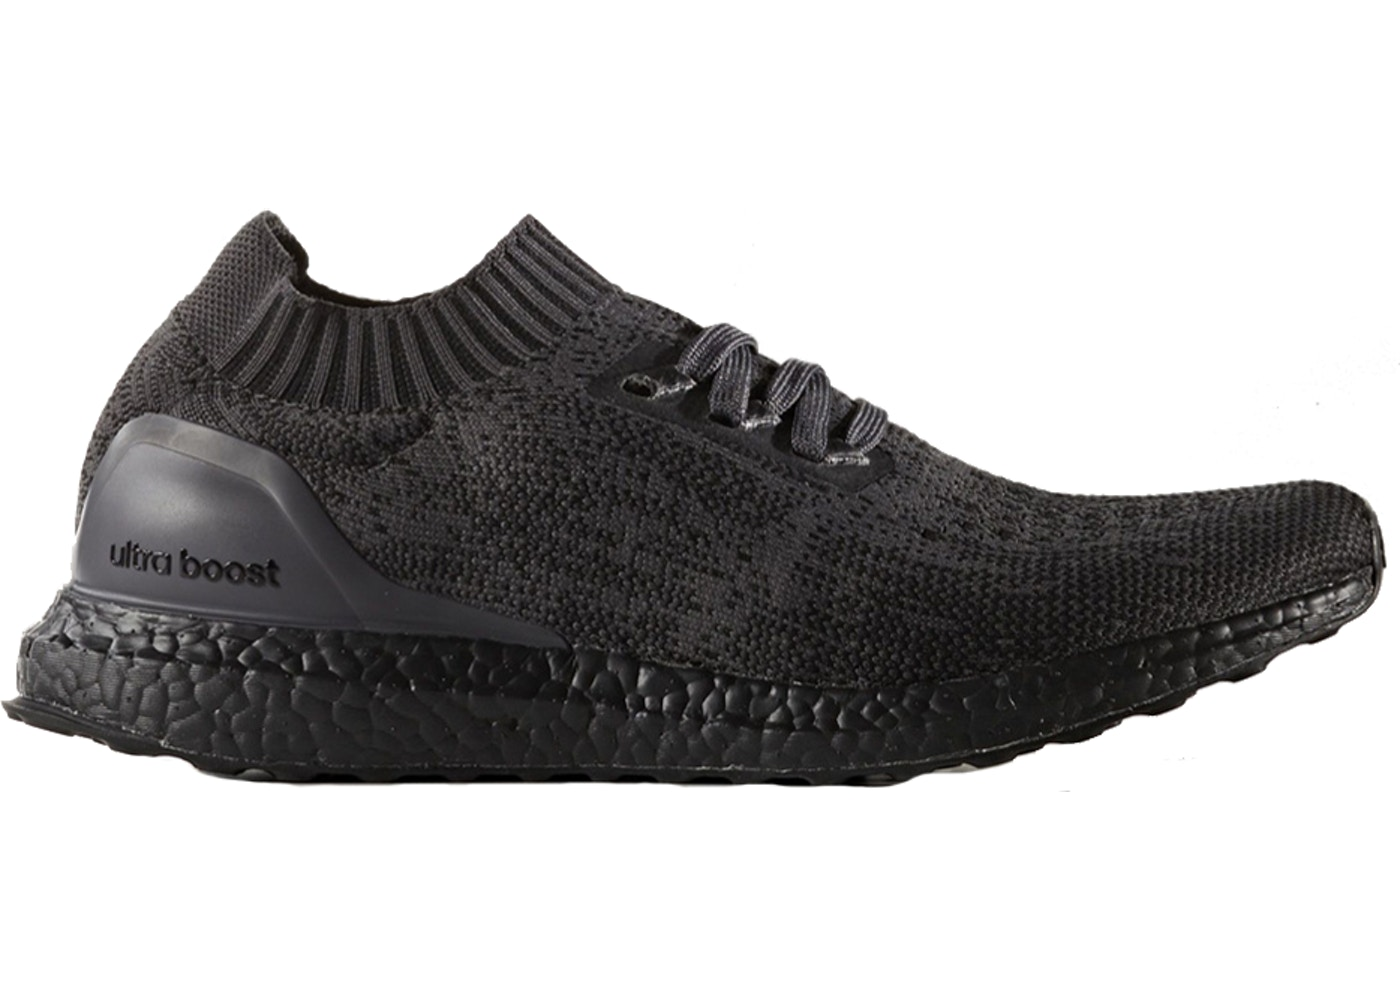 4f374f974524a adidas Ultra Boost Size 7 Shoes - Average Sale Price